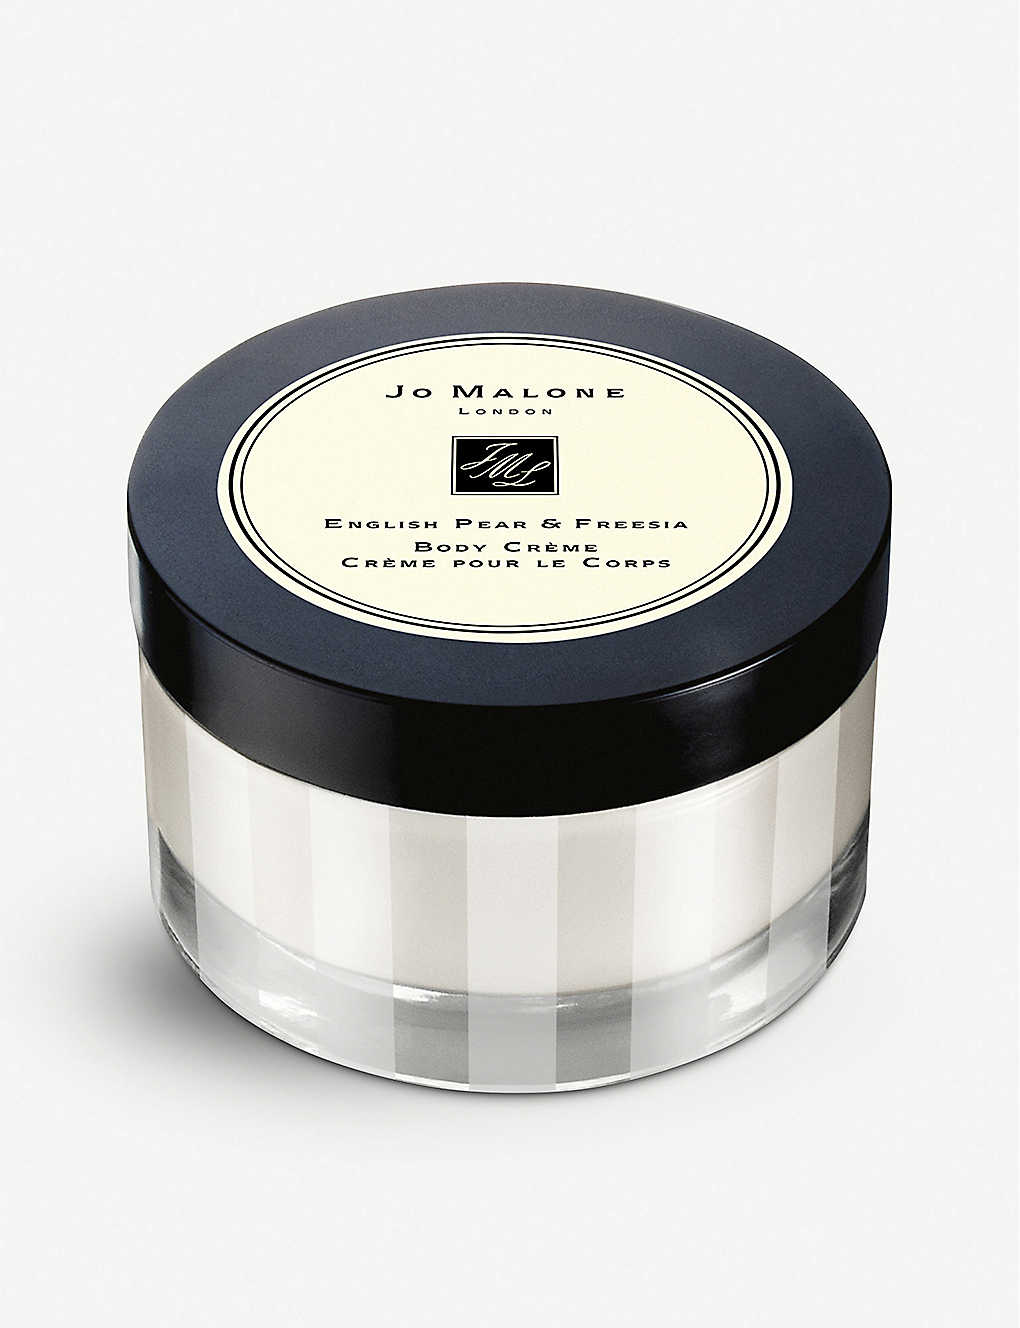 JO MALONE LONDON: English Pear & Freesia body crème 175ml